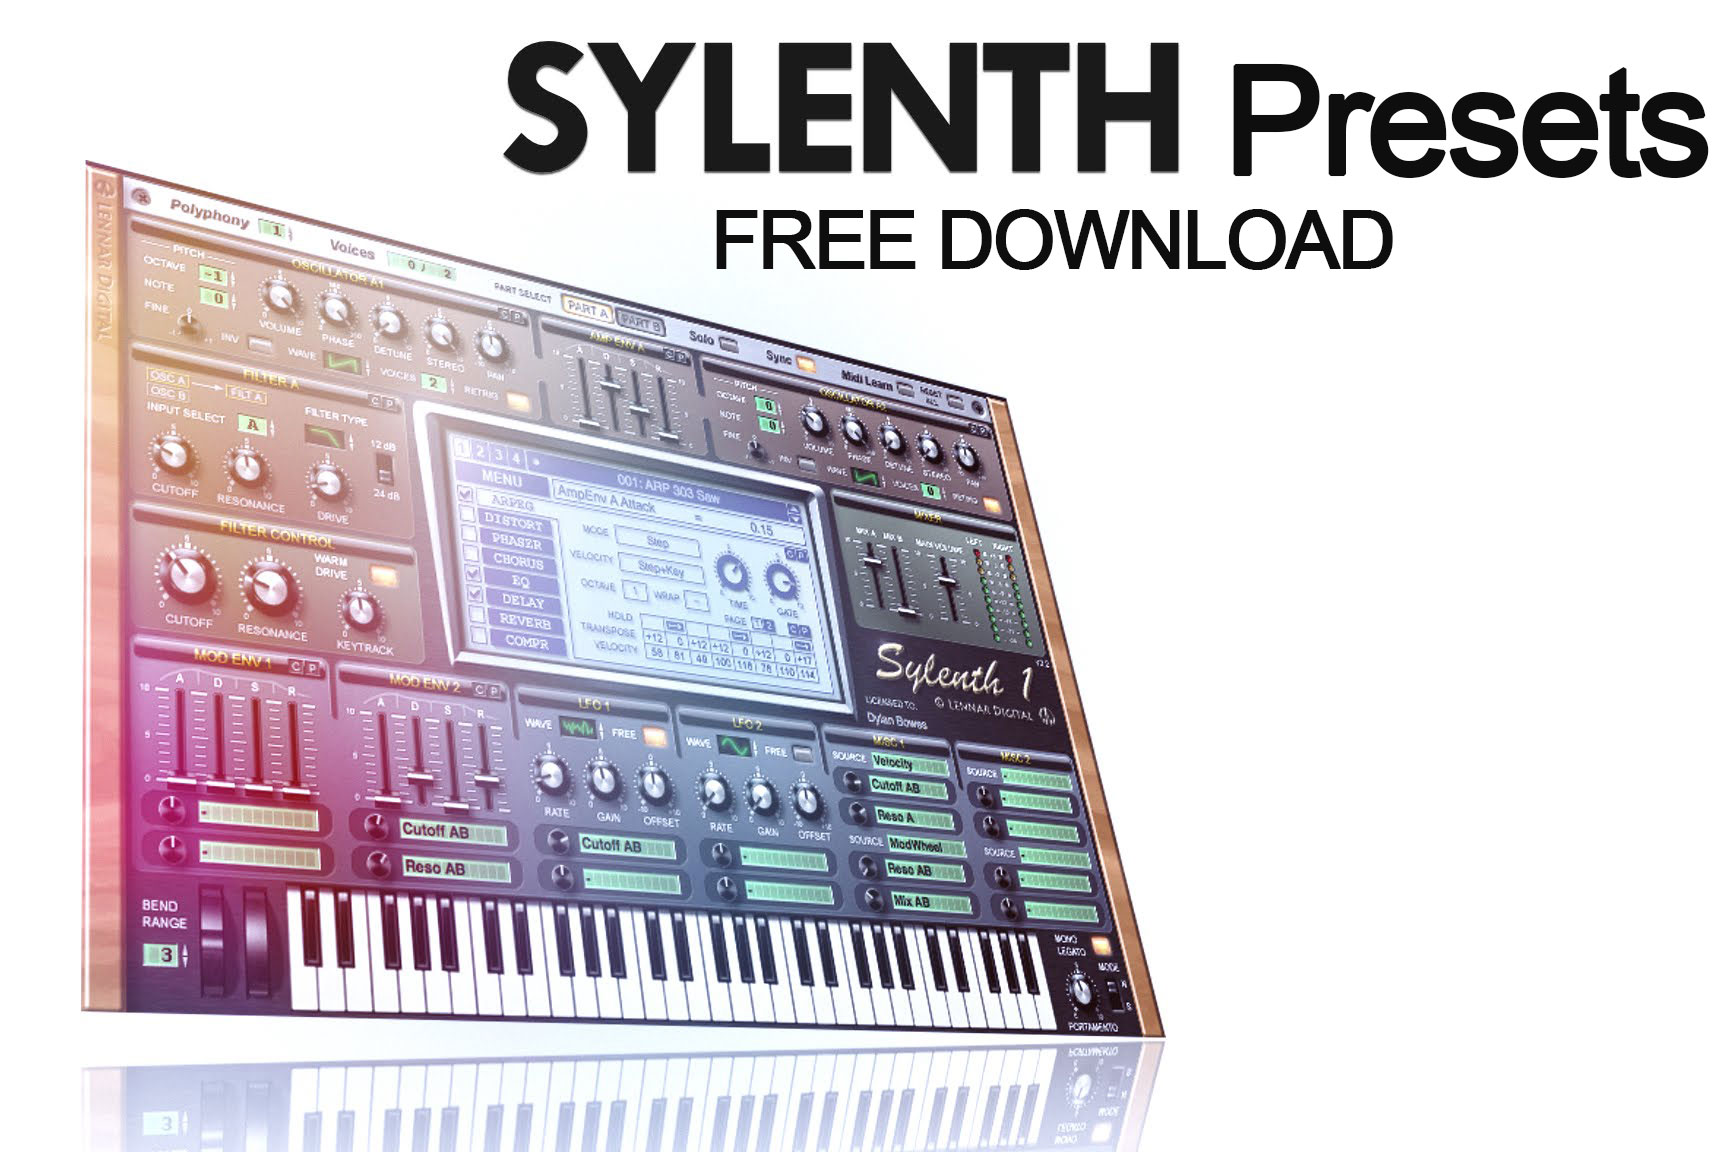 Best Free Sylenth1 Presets / Soundbanks - 2016 Updated